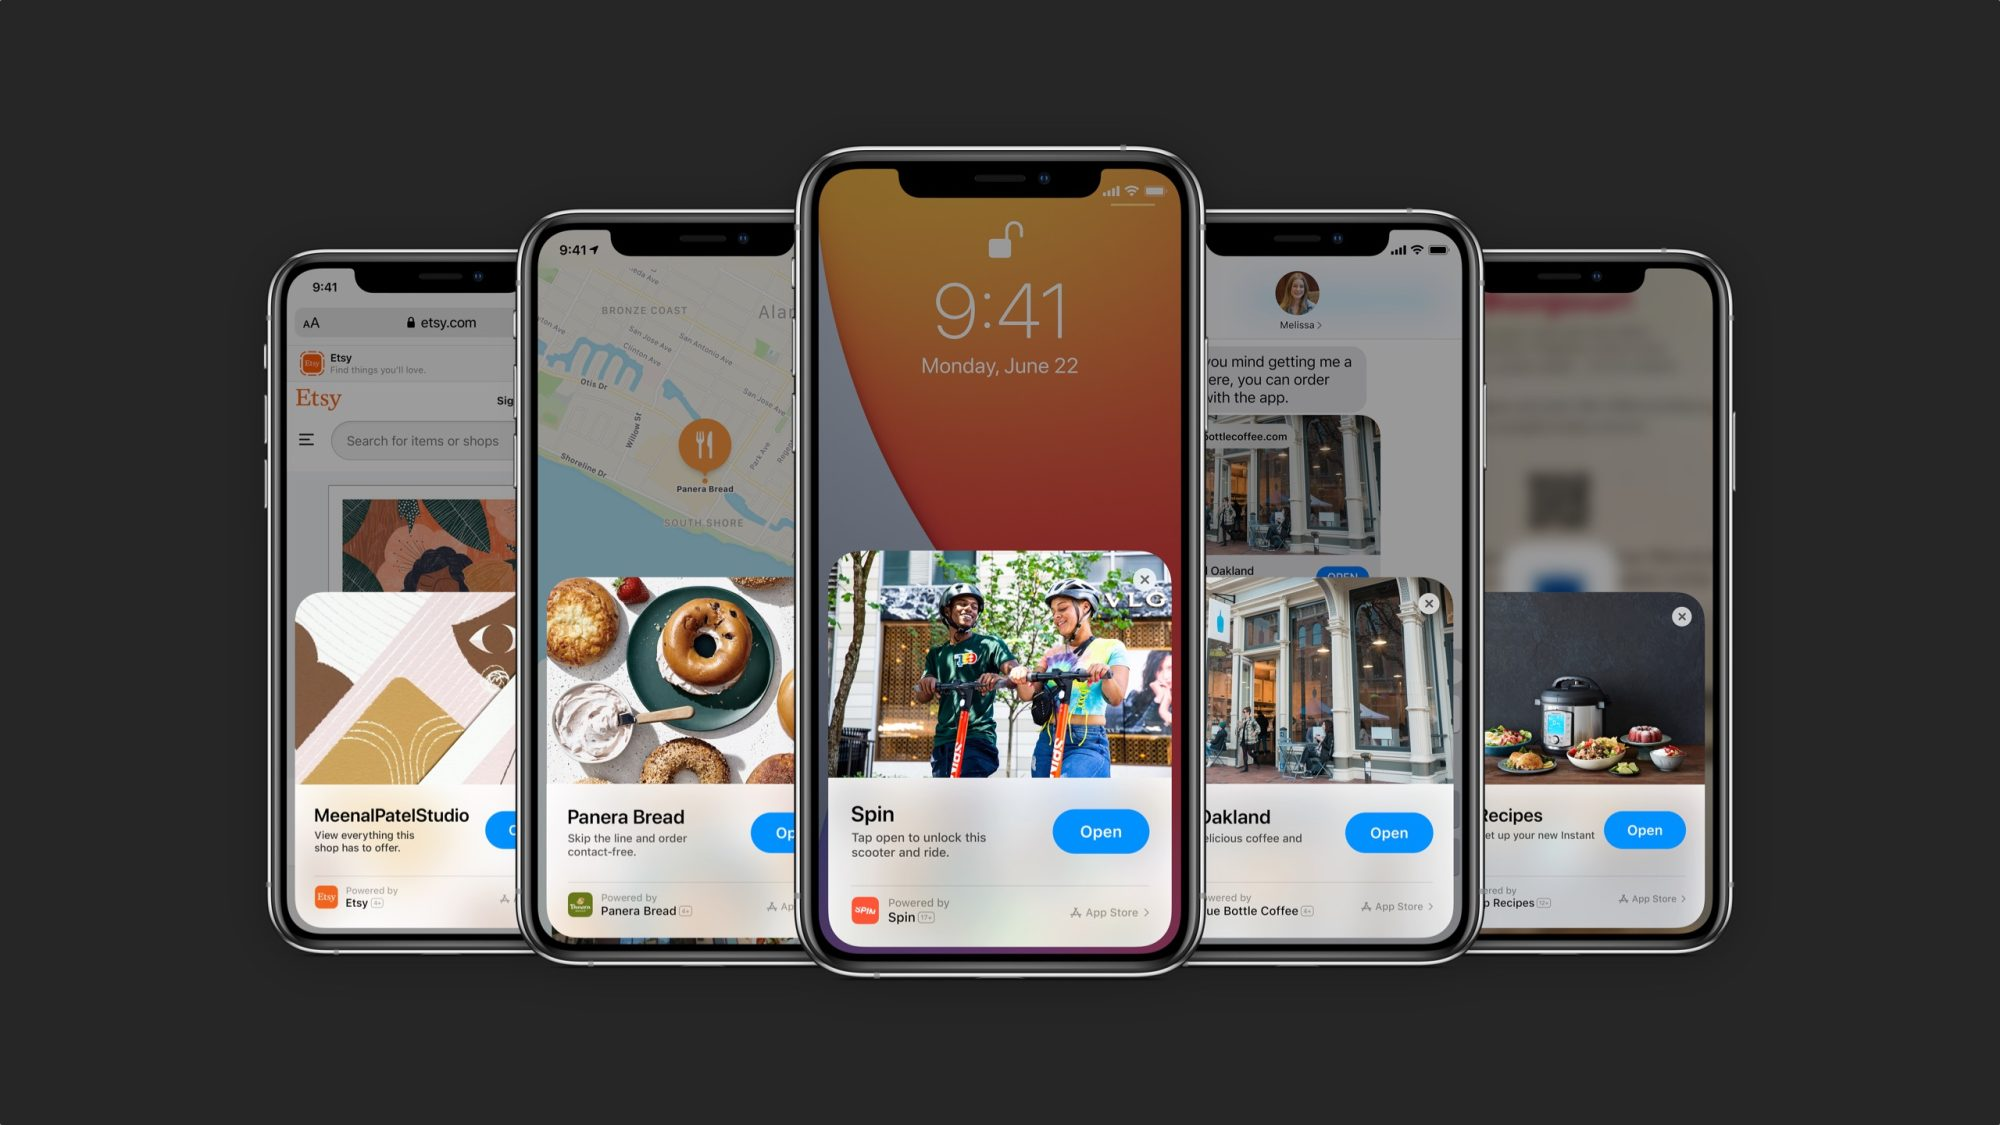 Here's how iOS 14's new App Clips feature will work